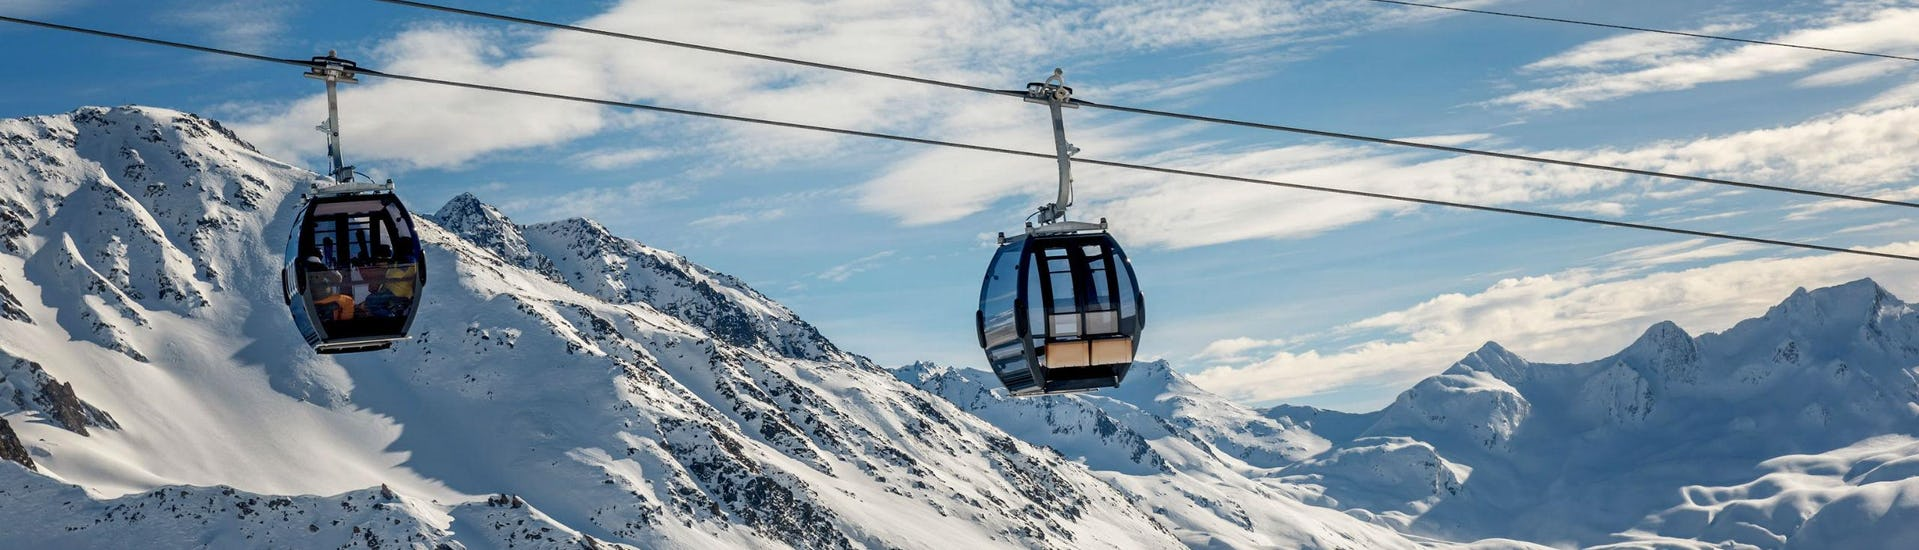 A view of the cable car carrying skiers up to the top of the mountain in the ski resort of Andermatt, where local ski schools offer a selection of ski lessons.